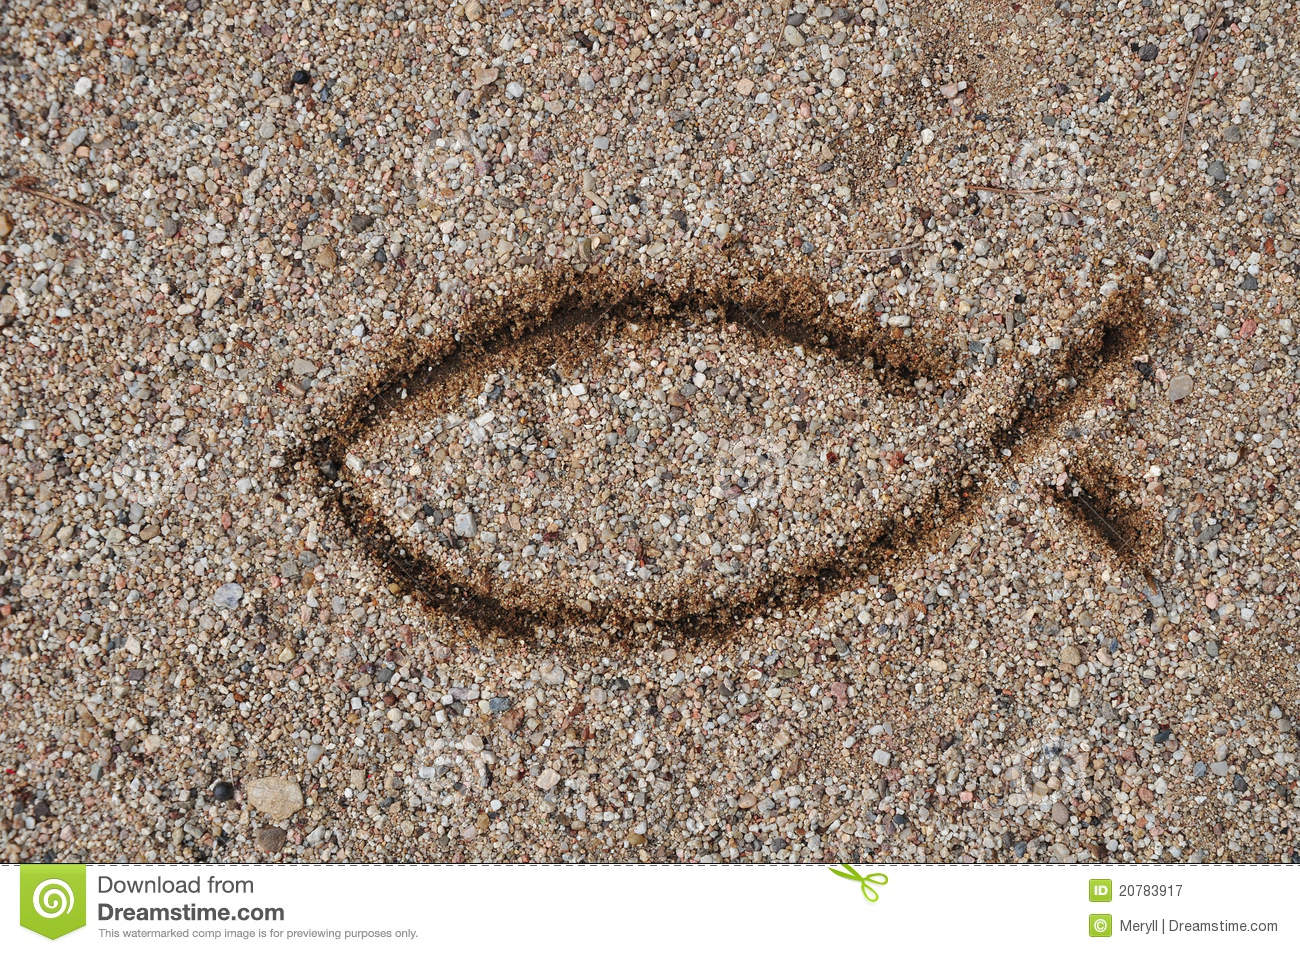 Christian fish stock images 505 photos fish sign christianity symbol fish sign drawed in sand as an old symbol for christians biocorpaavc Gallery